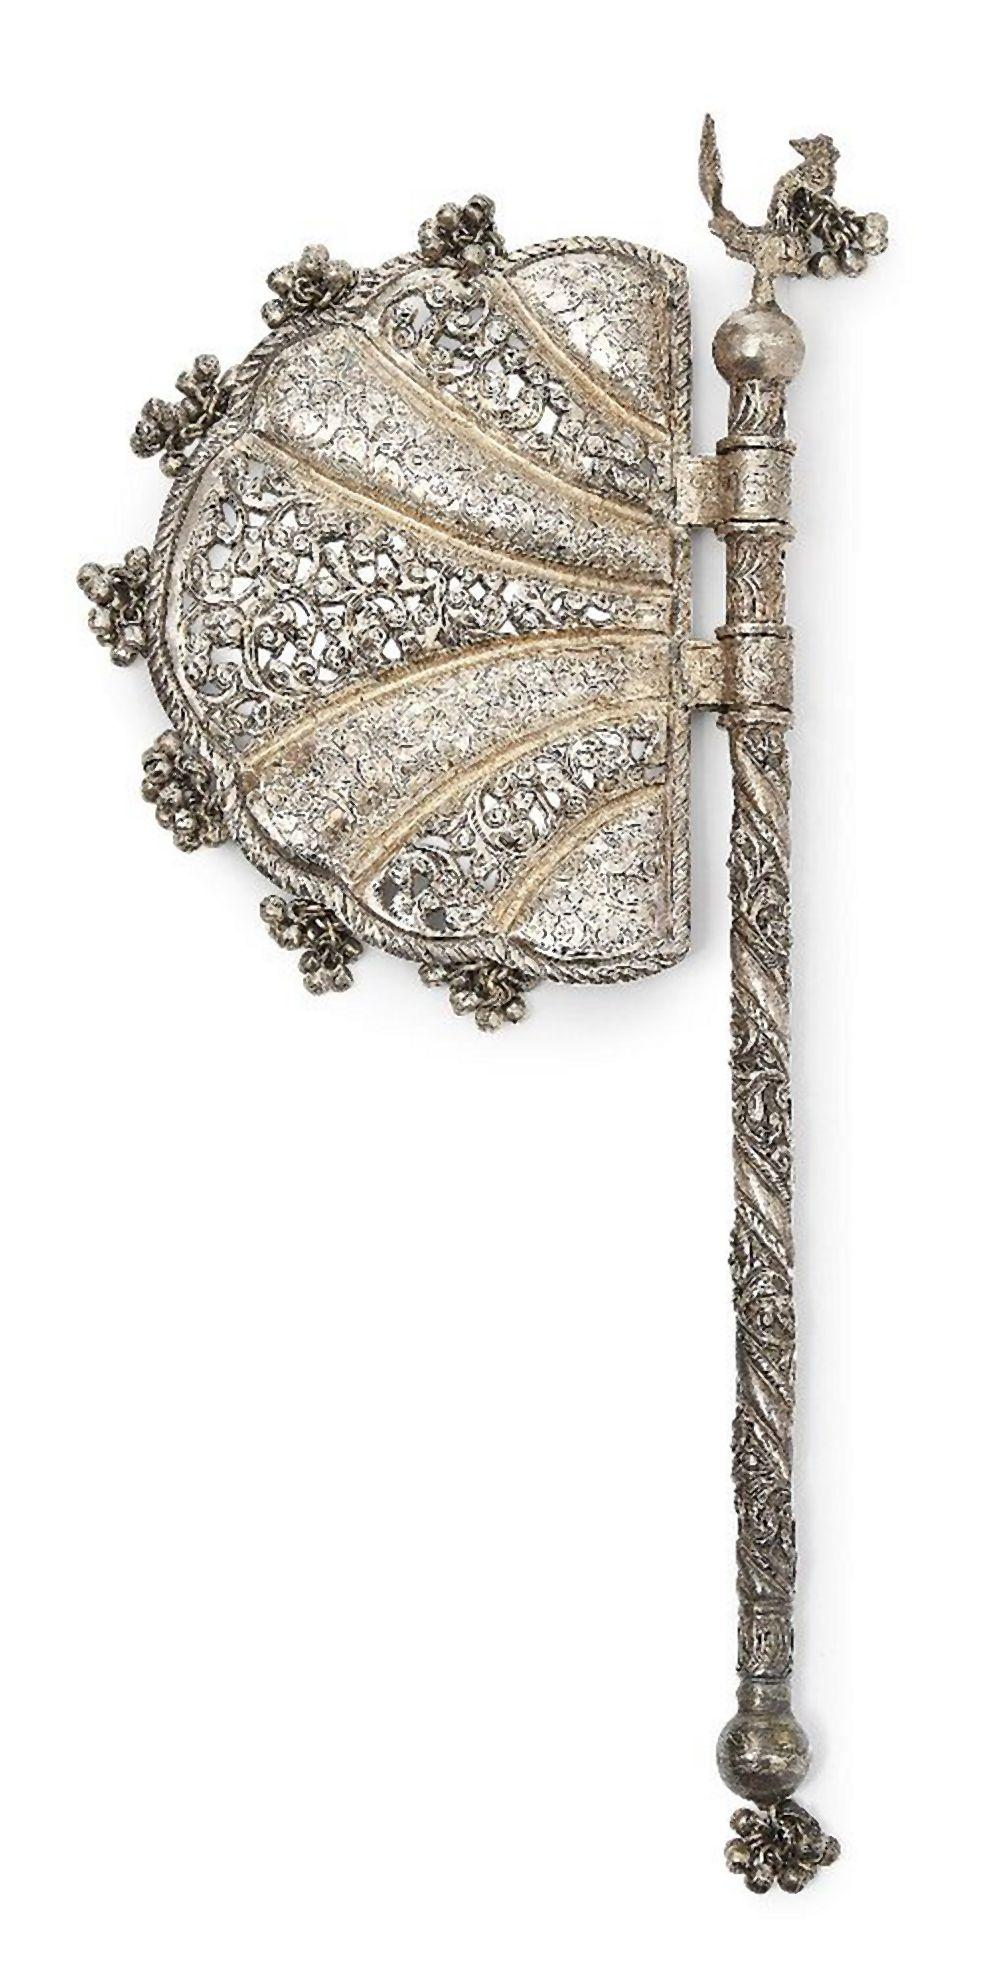 A silver ceremonial axe, India, early 20th century, the fan-shaped head for